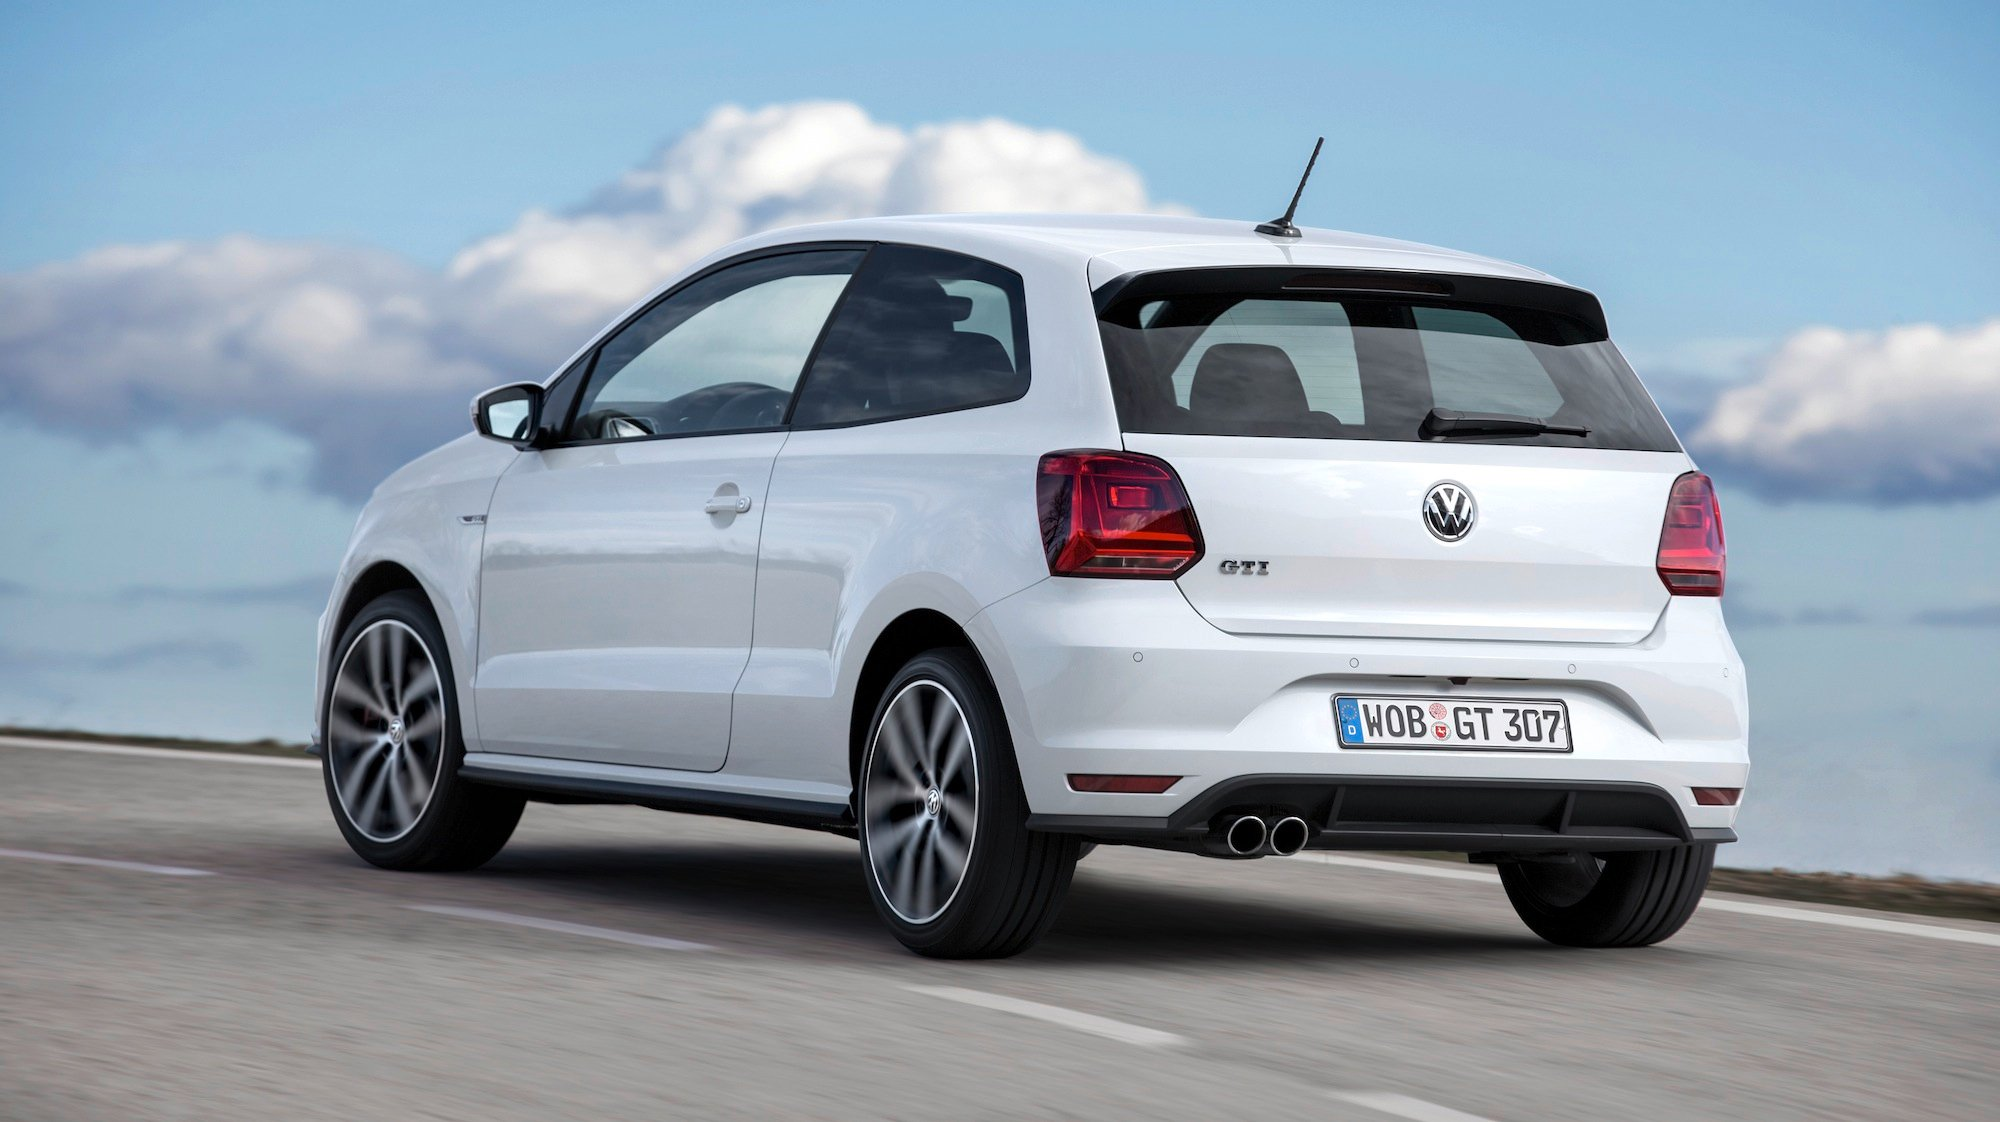 2015 Volkswagen Polo Gti Review Photos Caradvice